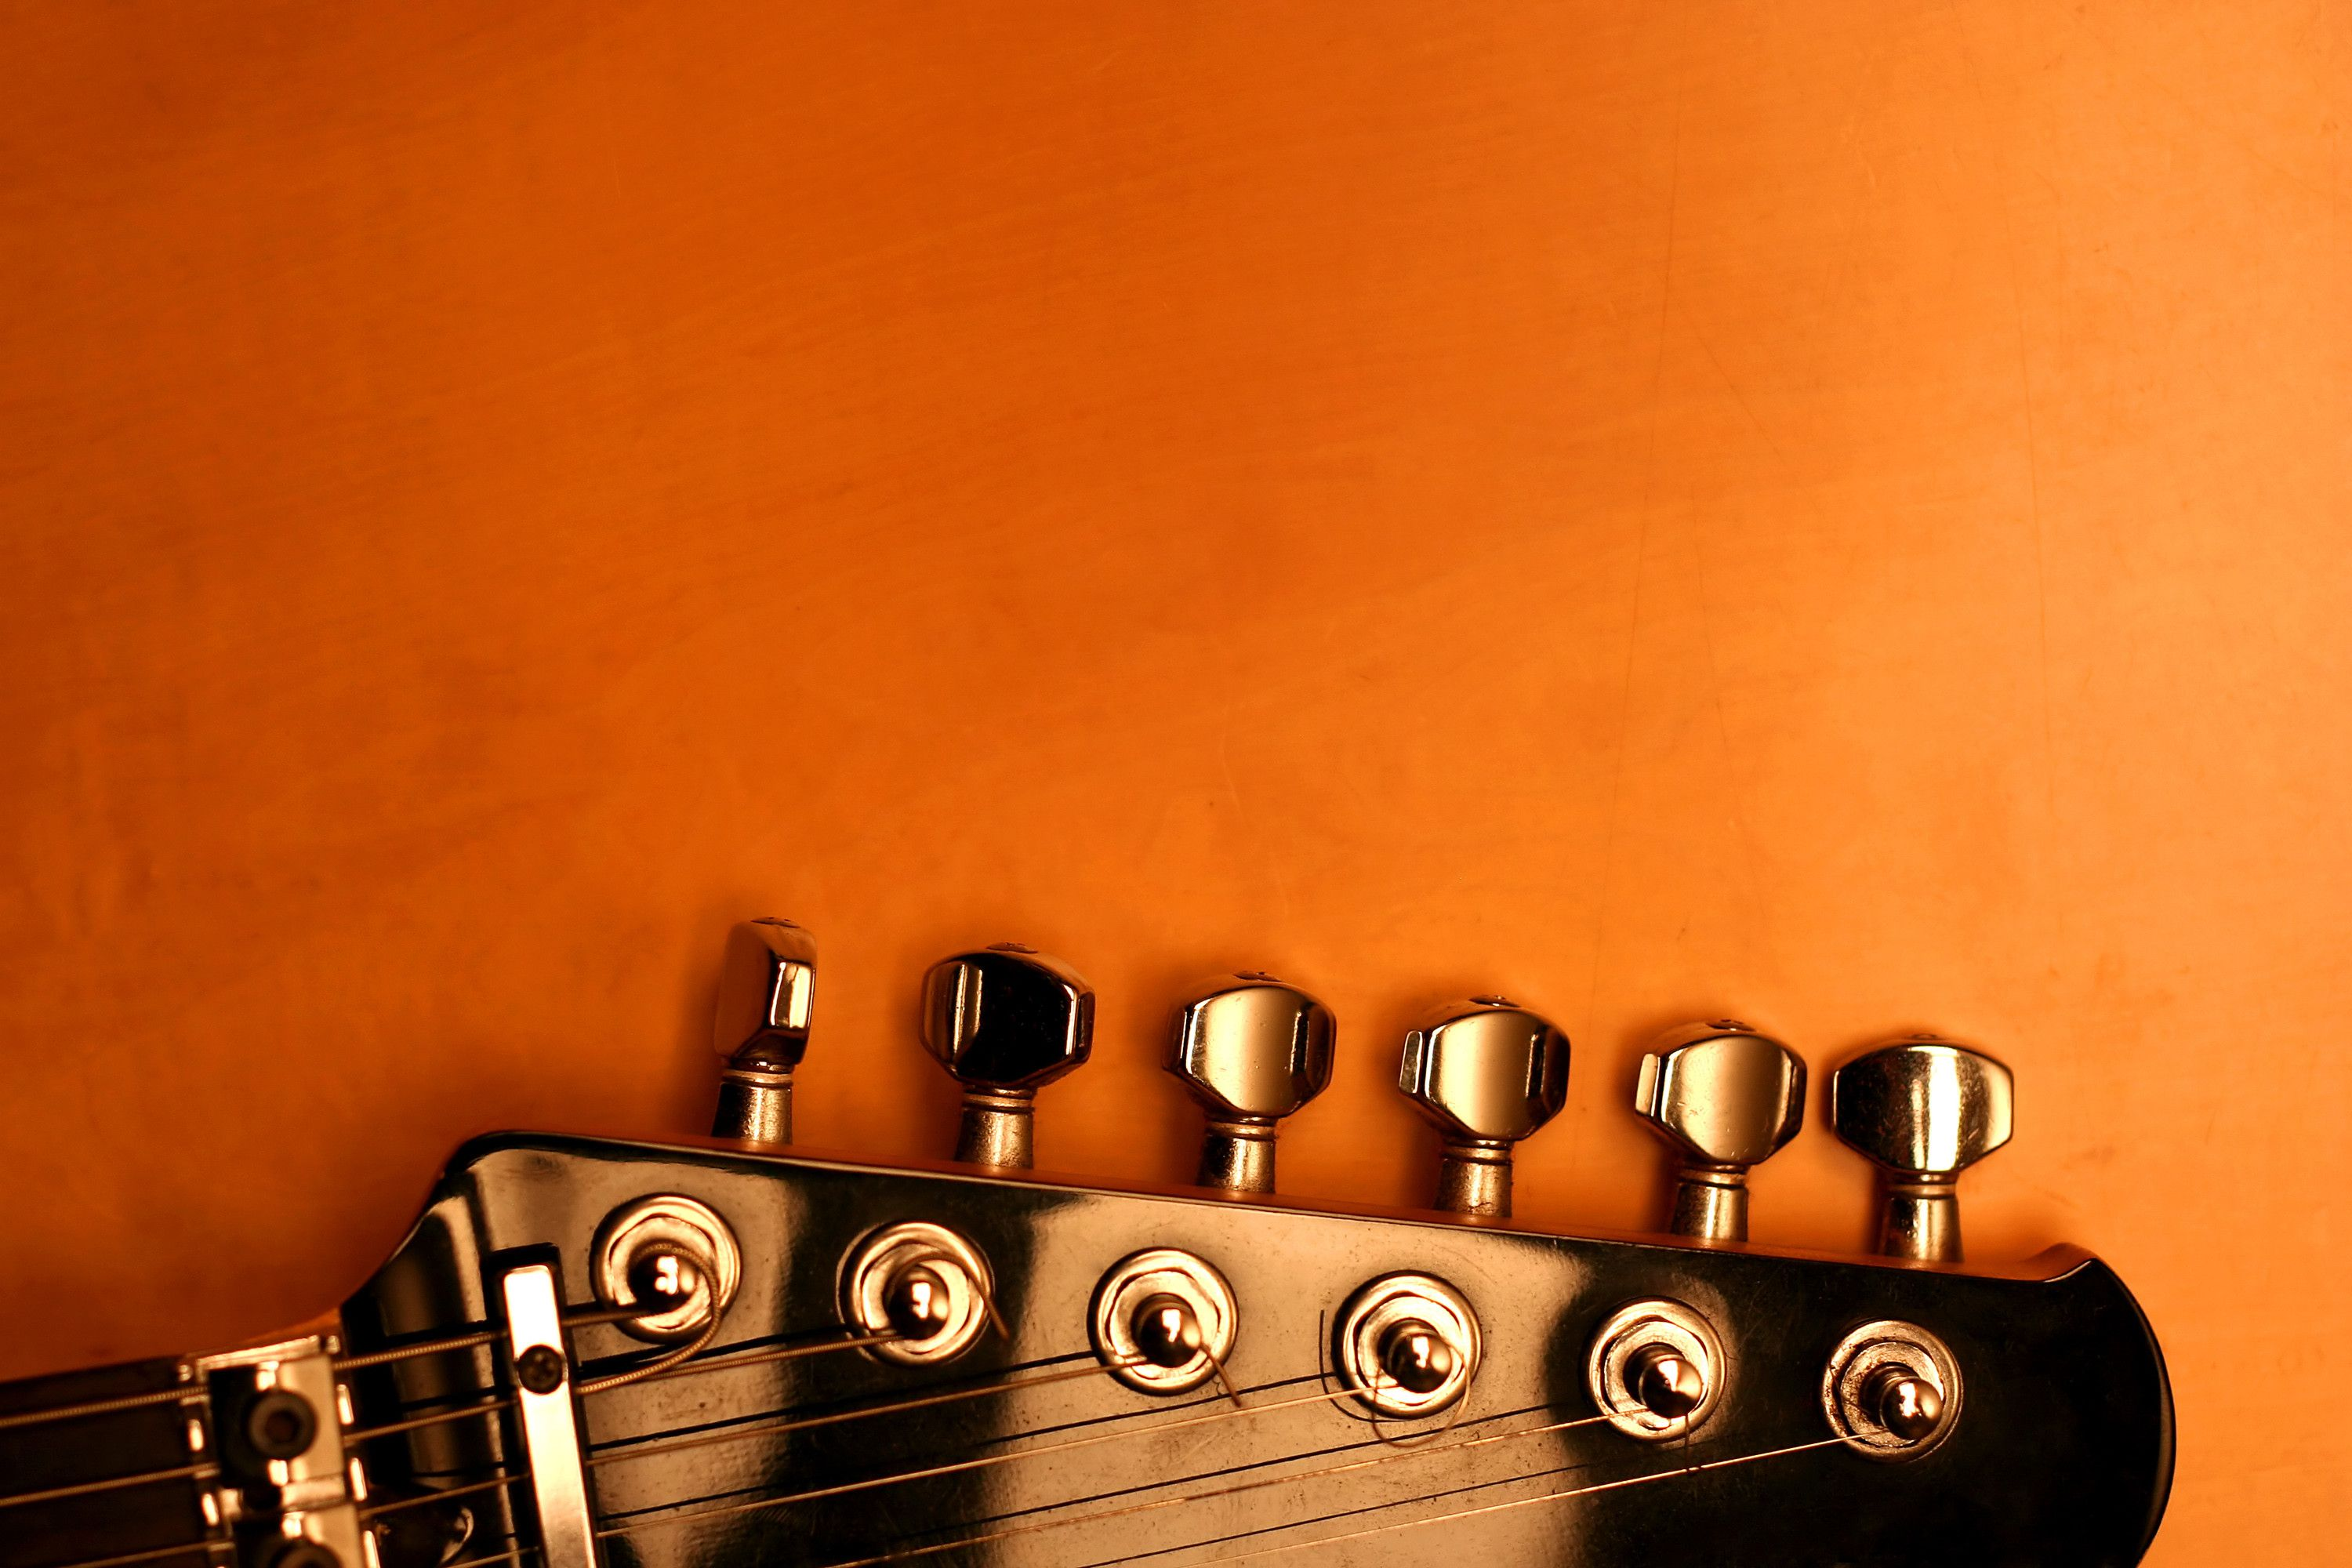 DesktopGuitarWallpapersHighResolutionPhoto wallpaperwiki